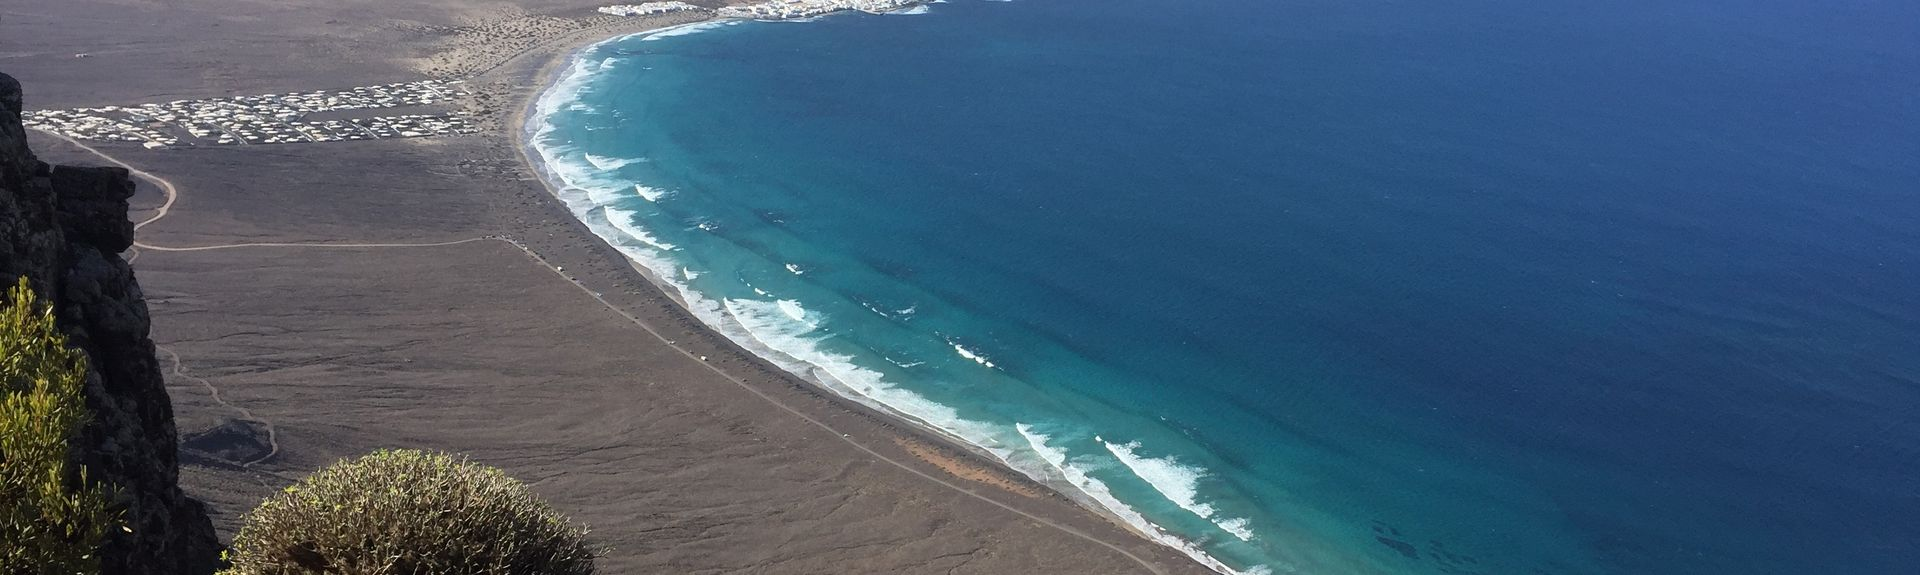 Las Cucharas Beach, Teguise, Spain